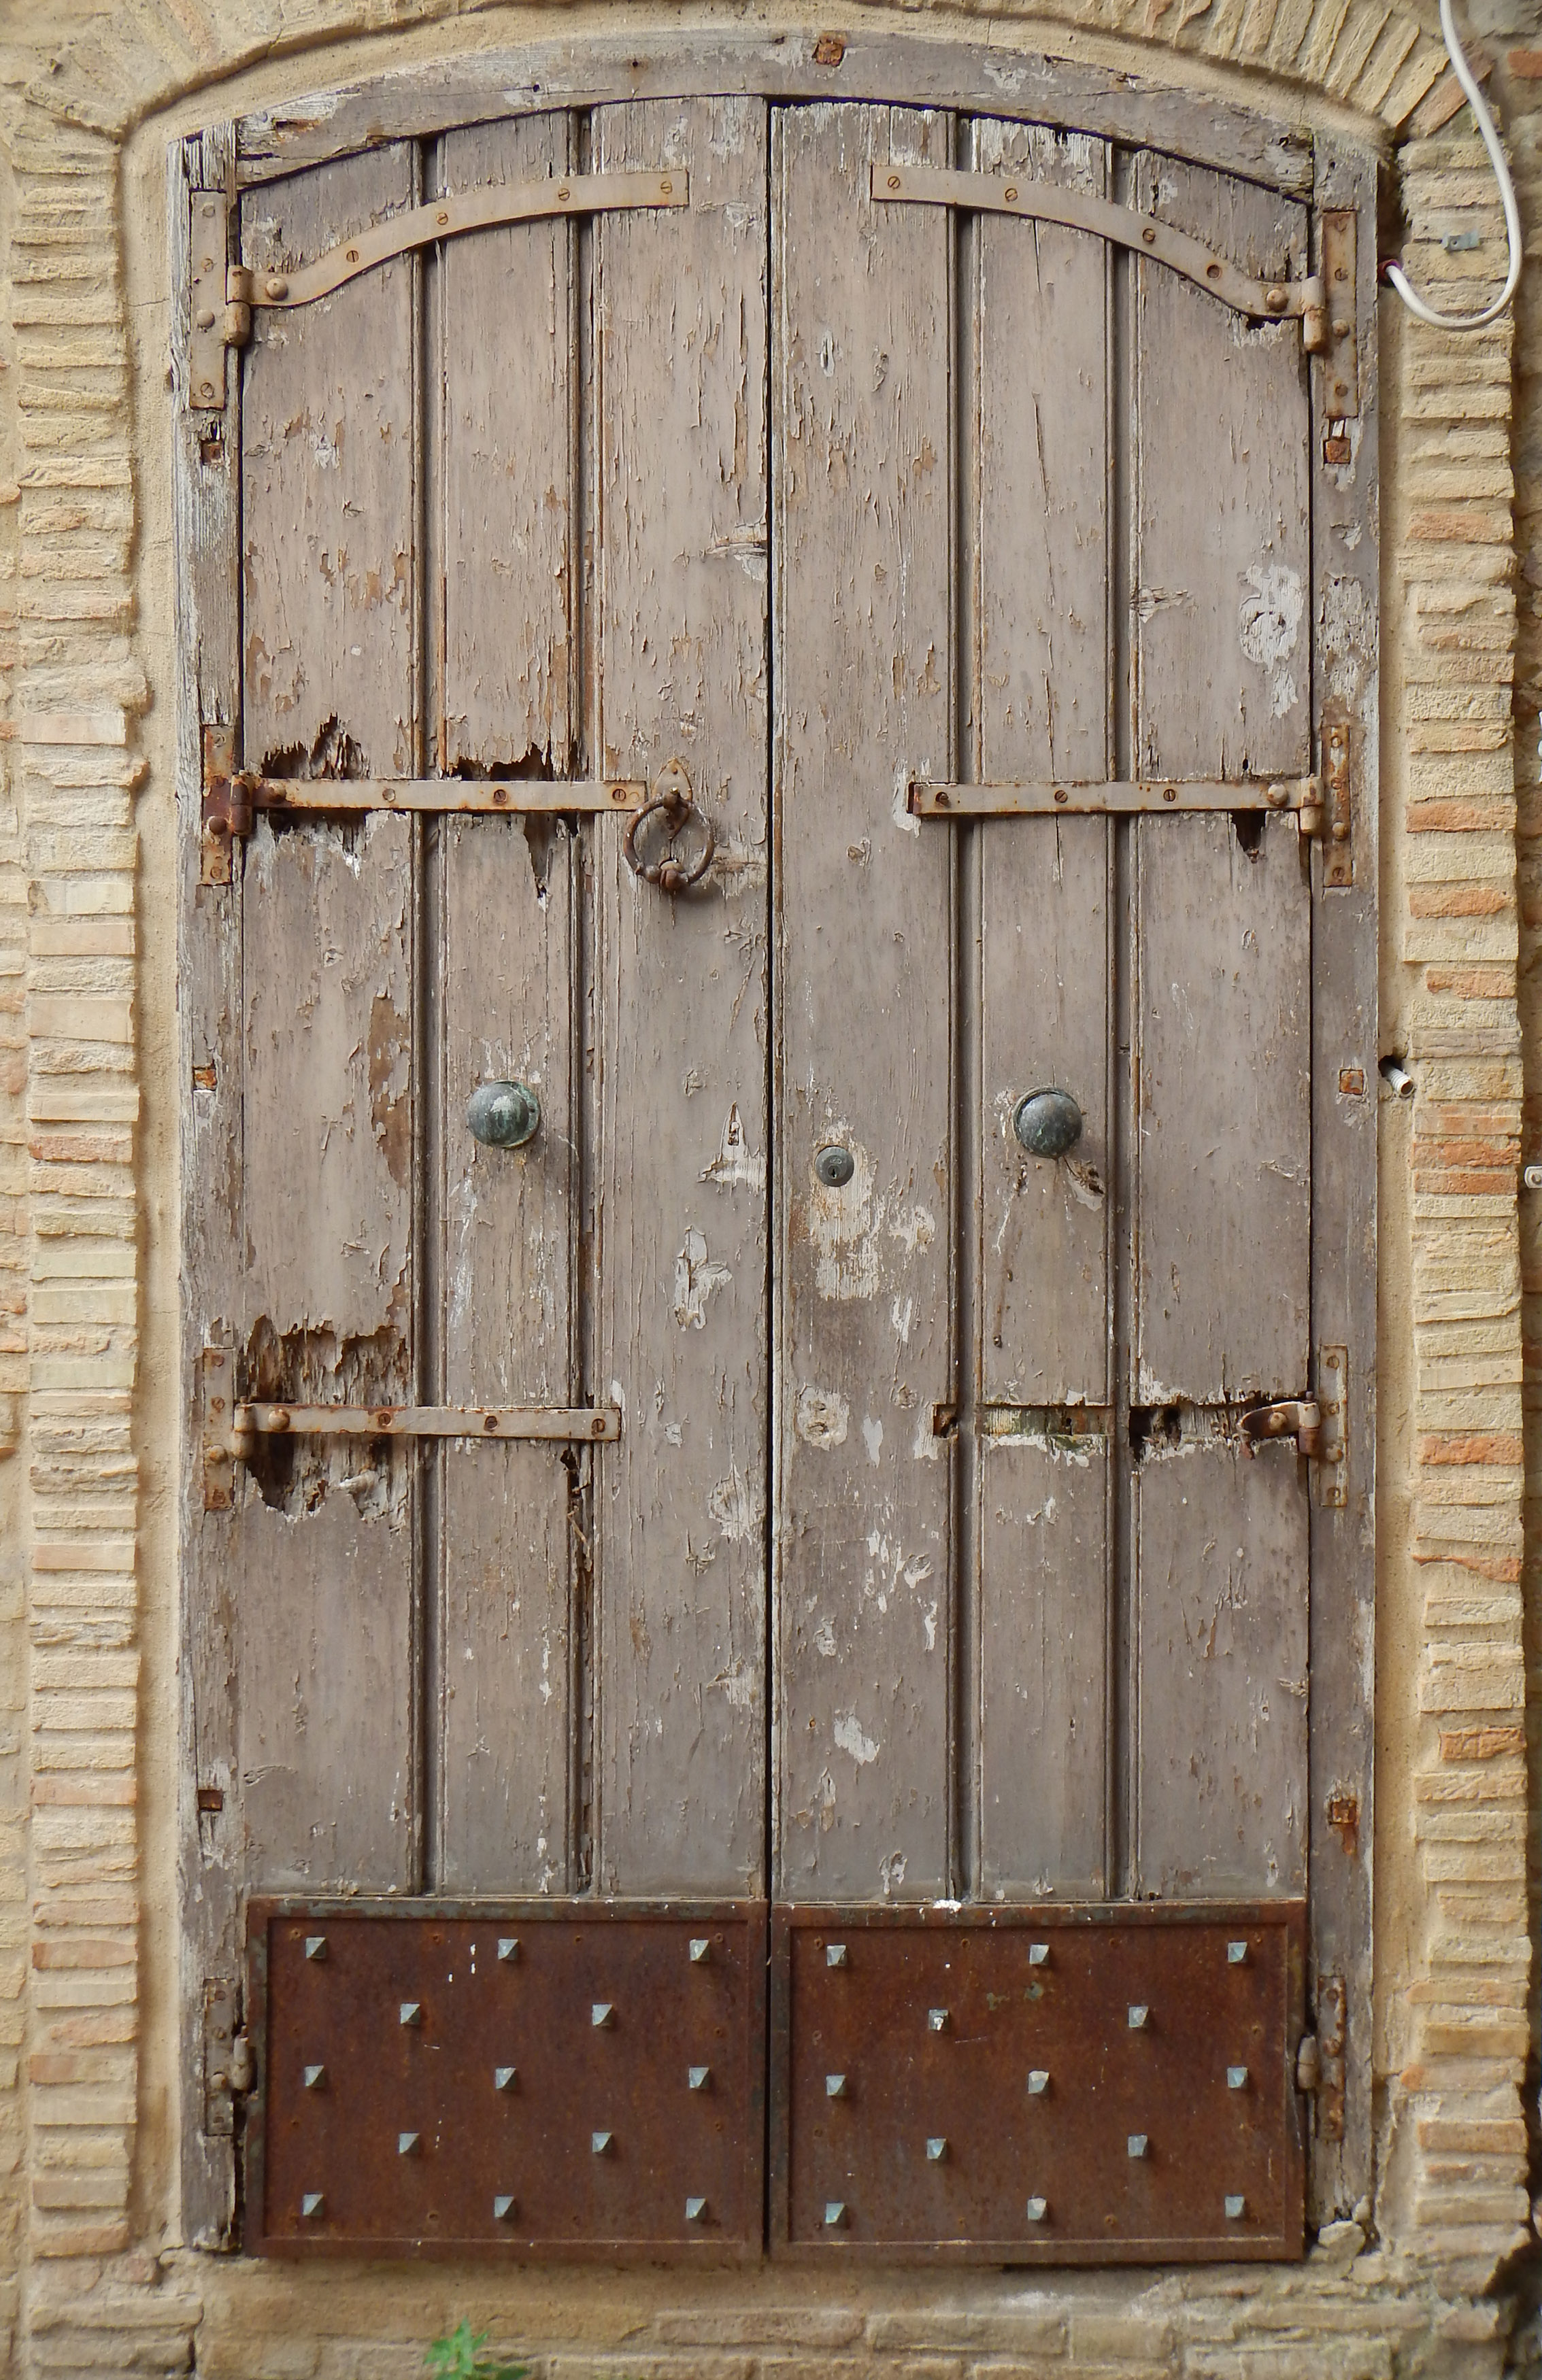 old_medieval_door_with_rusty_bottom_20130903_1829976859.jpg